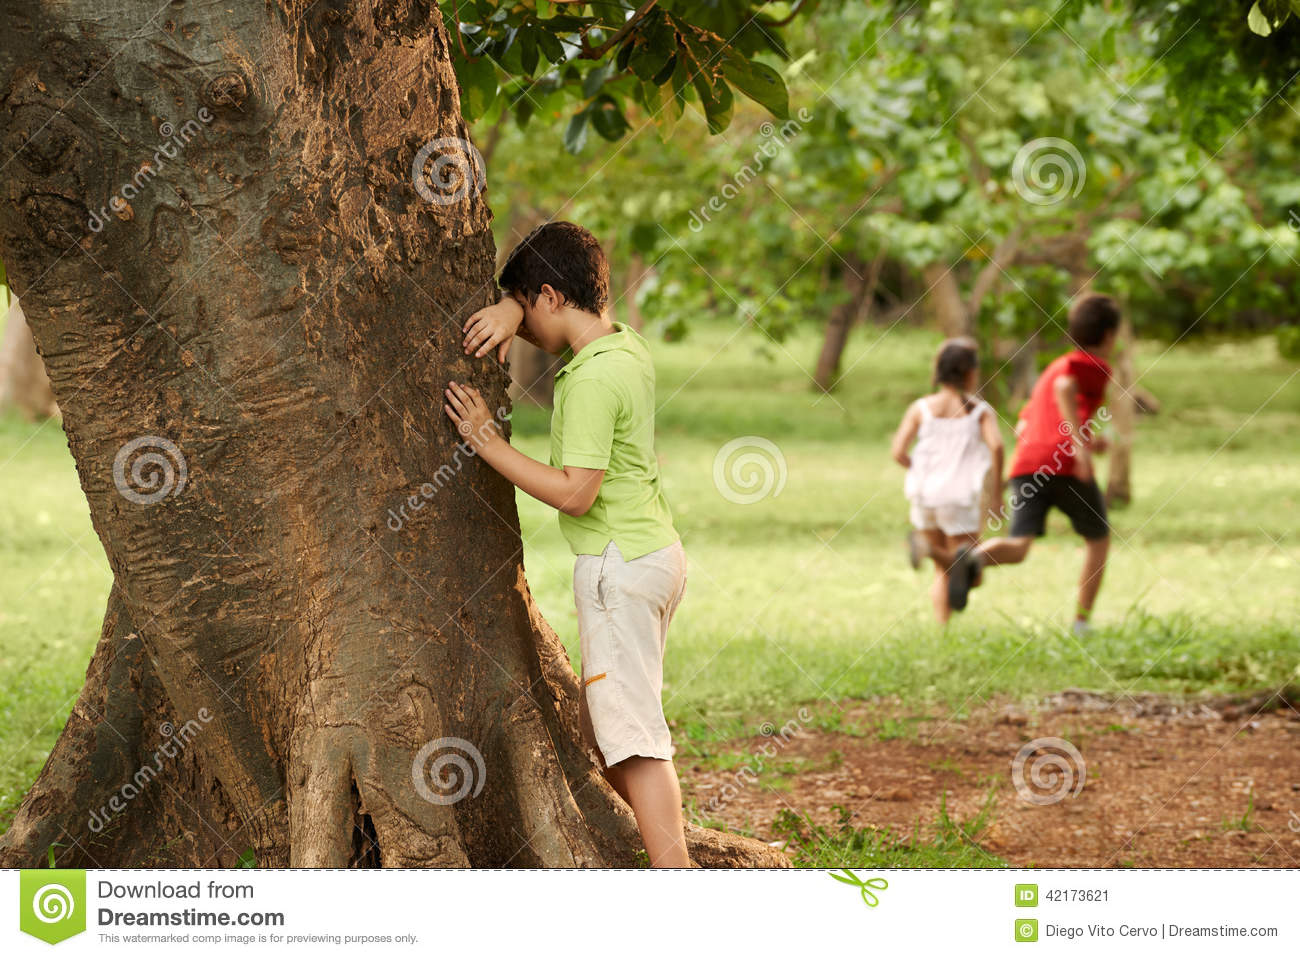 Hide And Seek Kids Male And Female Children Playing Hide And Seek Stock Image Image